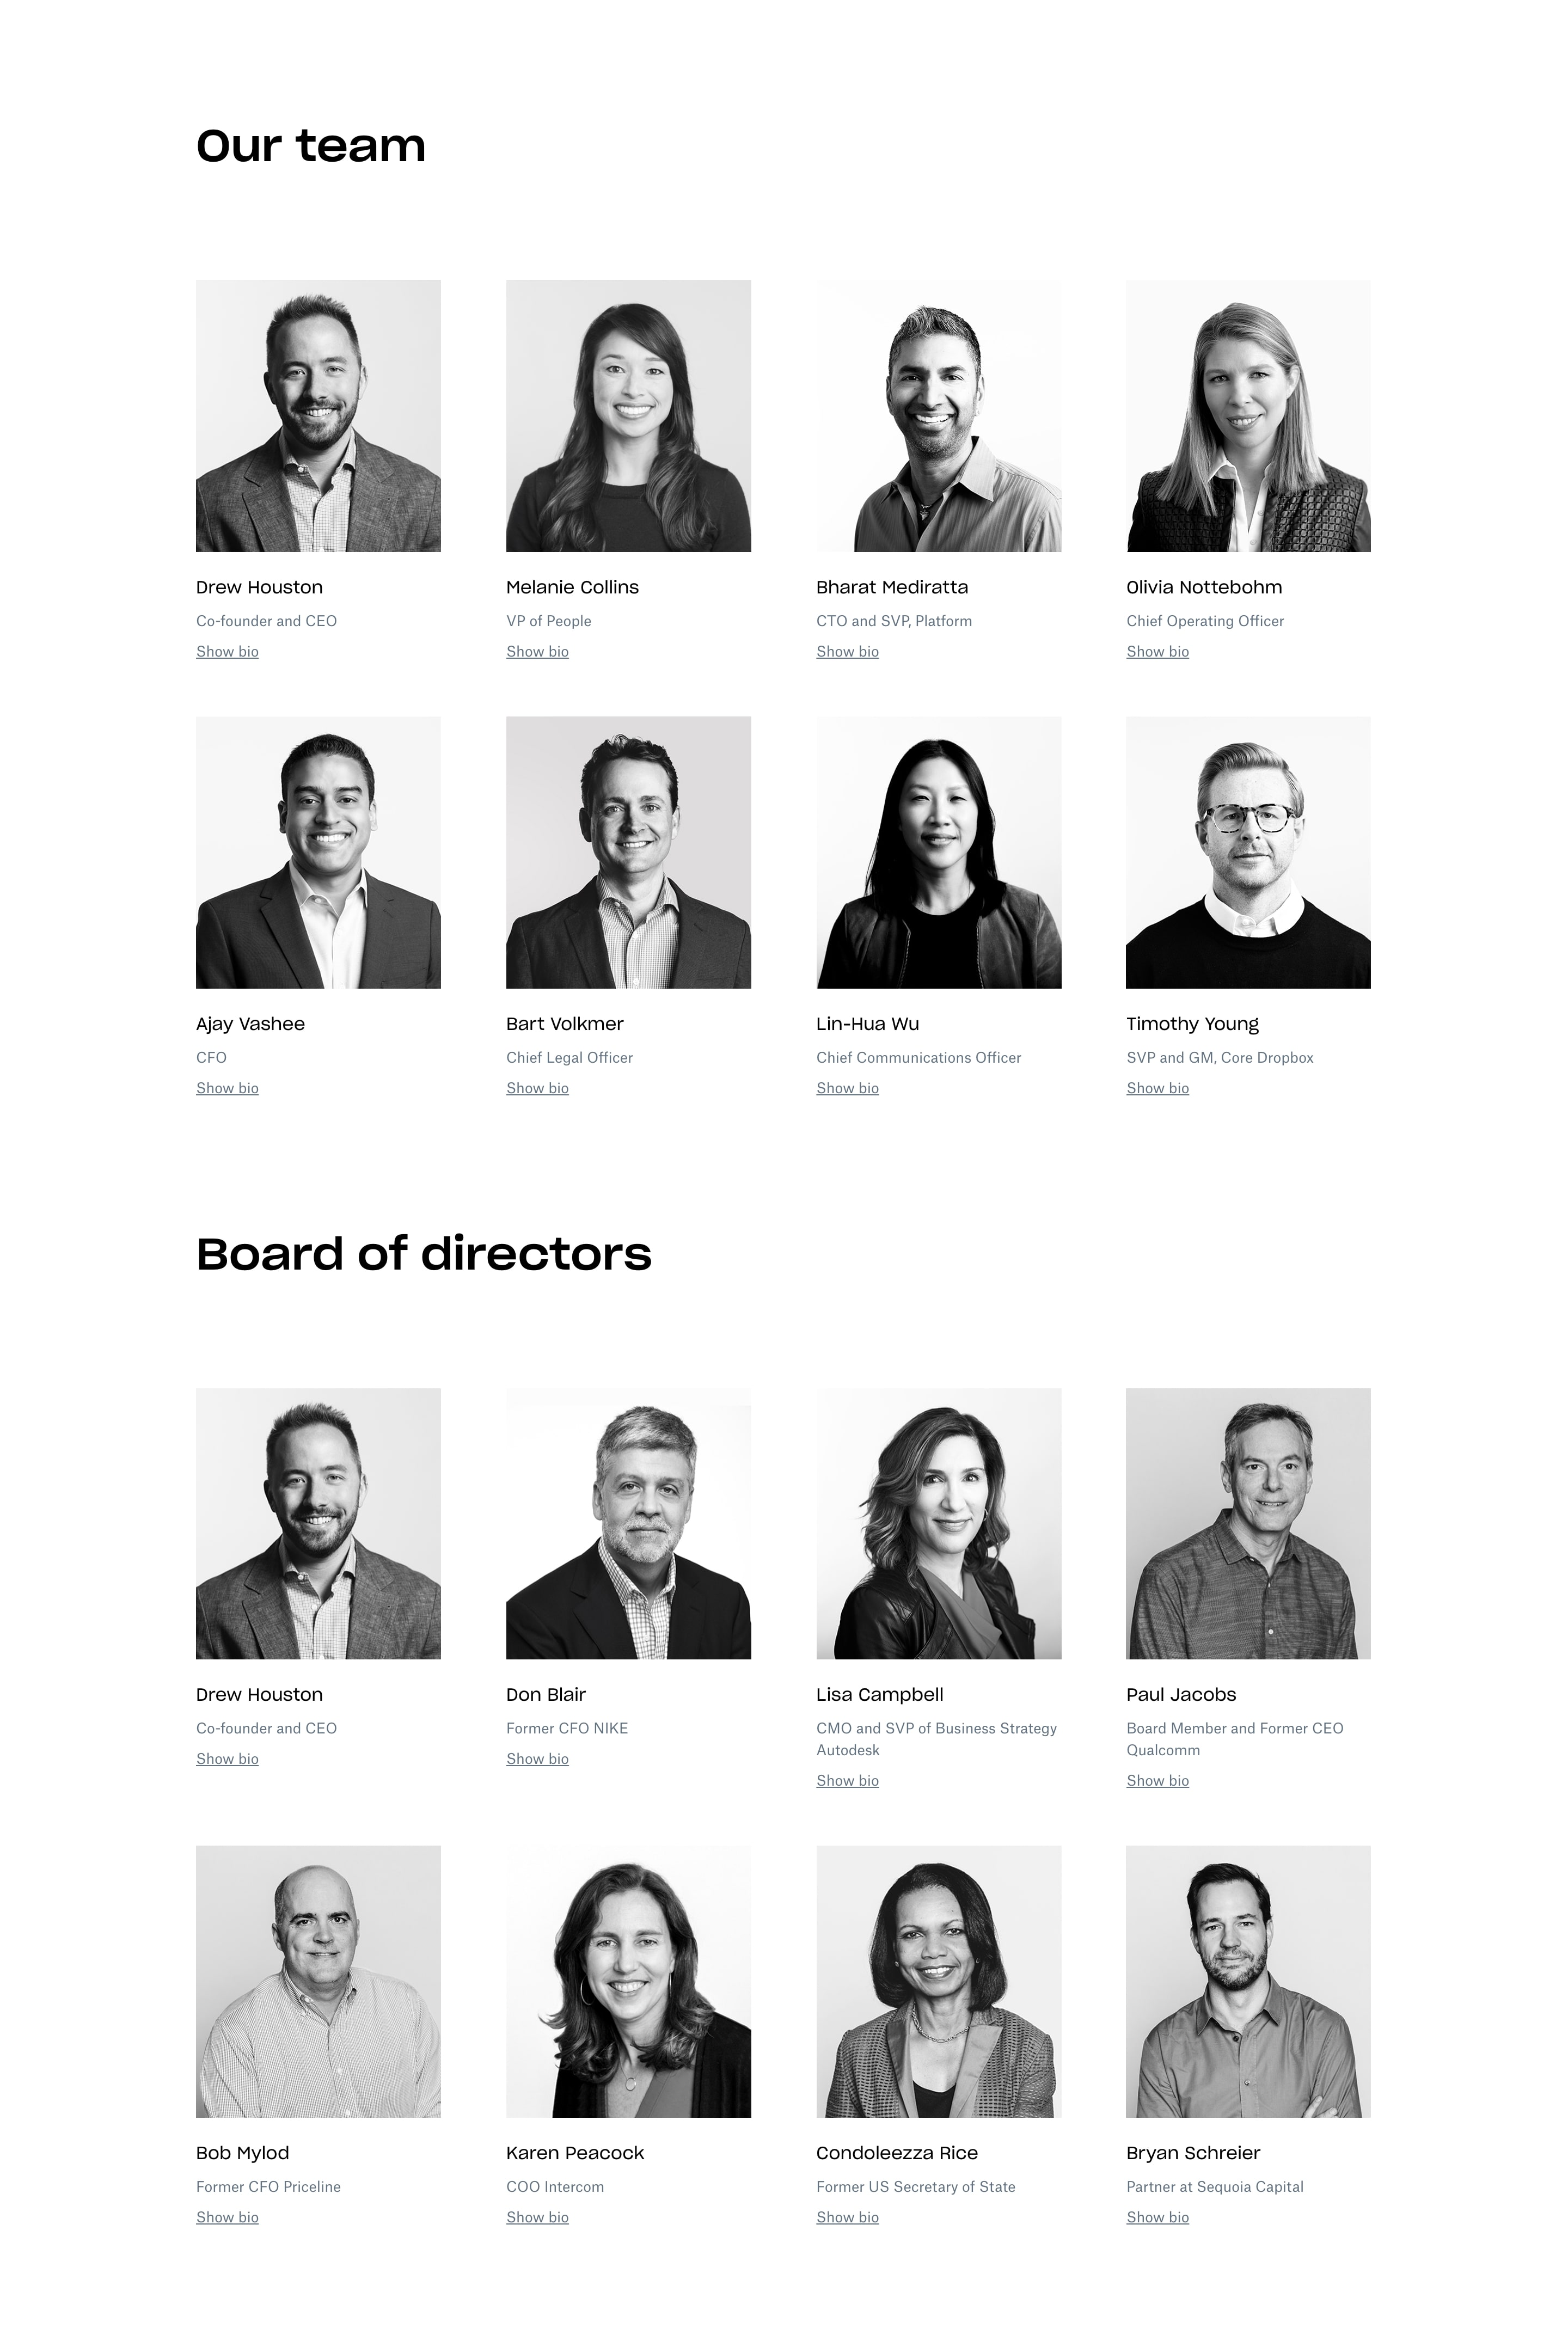 Our Team with List of Employees & Photos